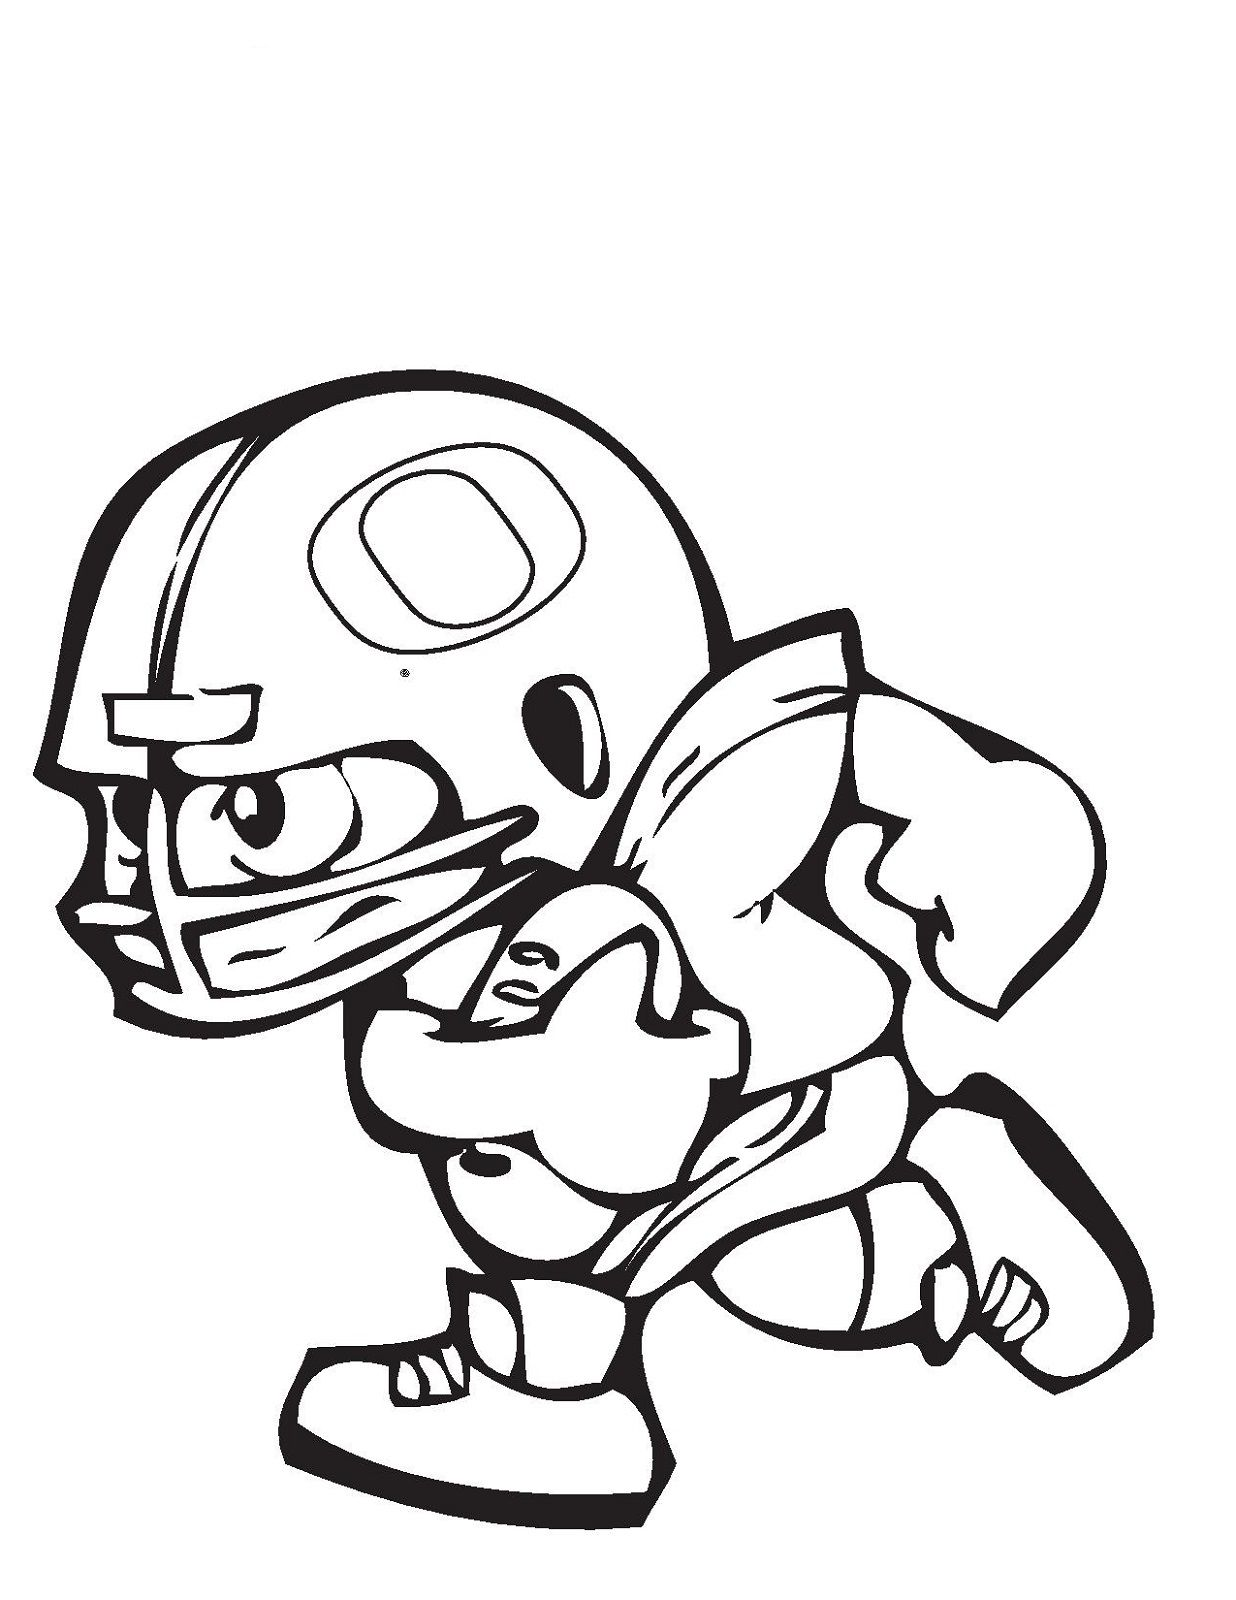 Football Color Pages 2018 Football Coloring Pages Dinosaur Coloring Pages Sports Coloring Pages [ 1600 x 1236 Pixel ]